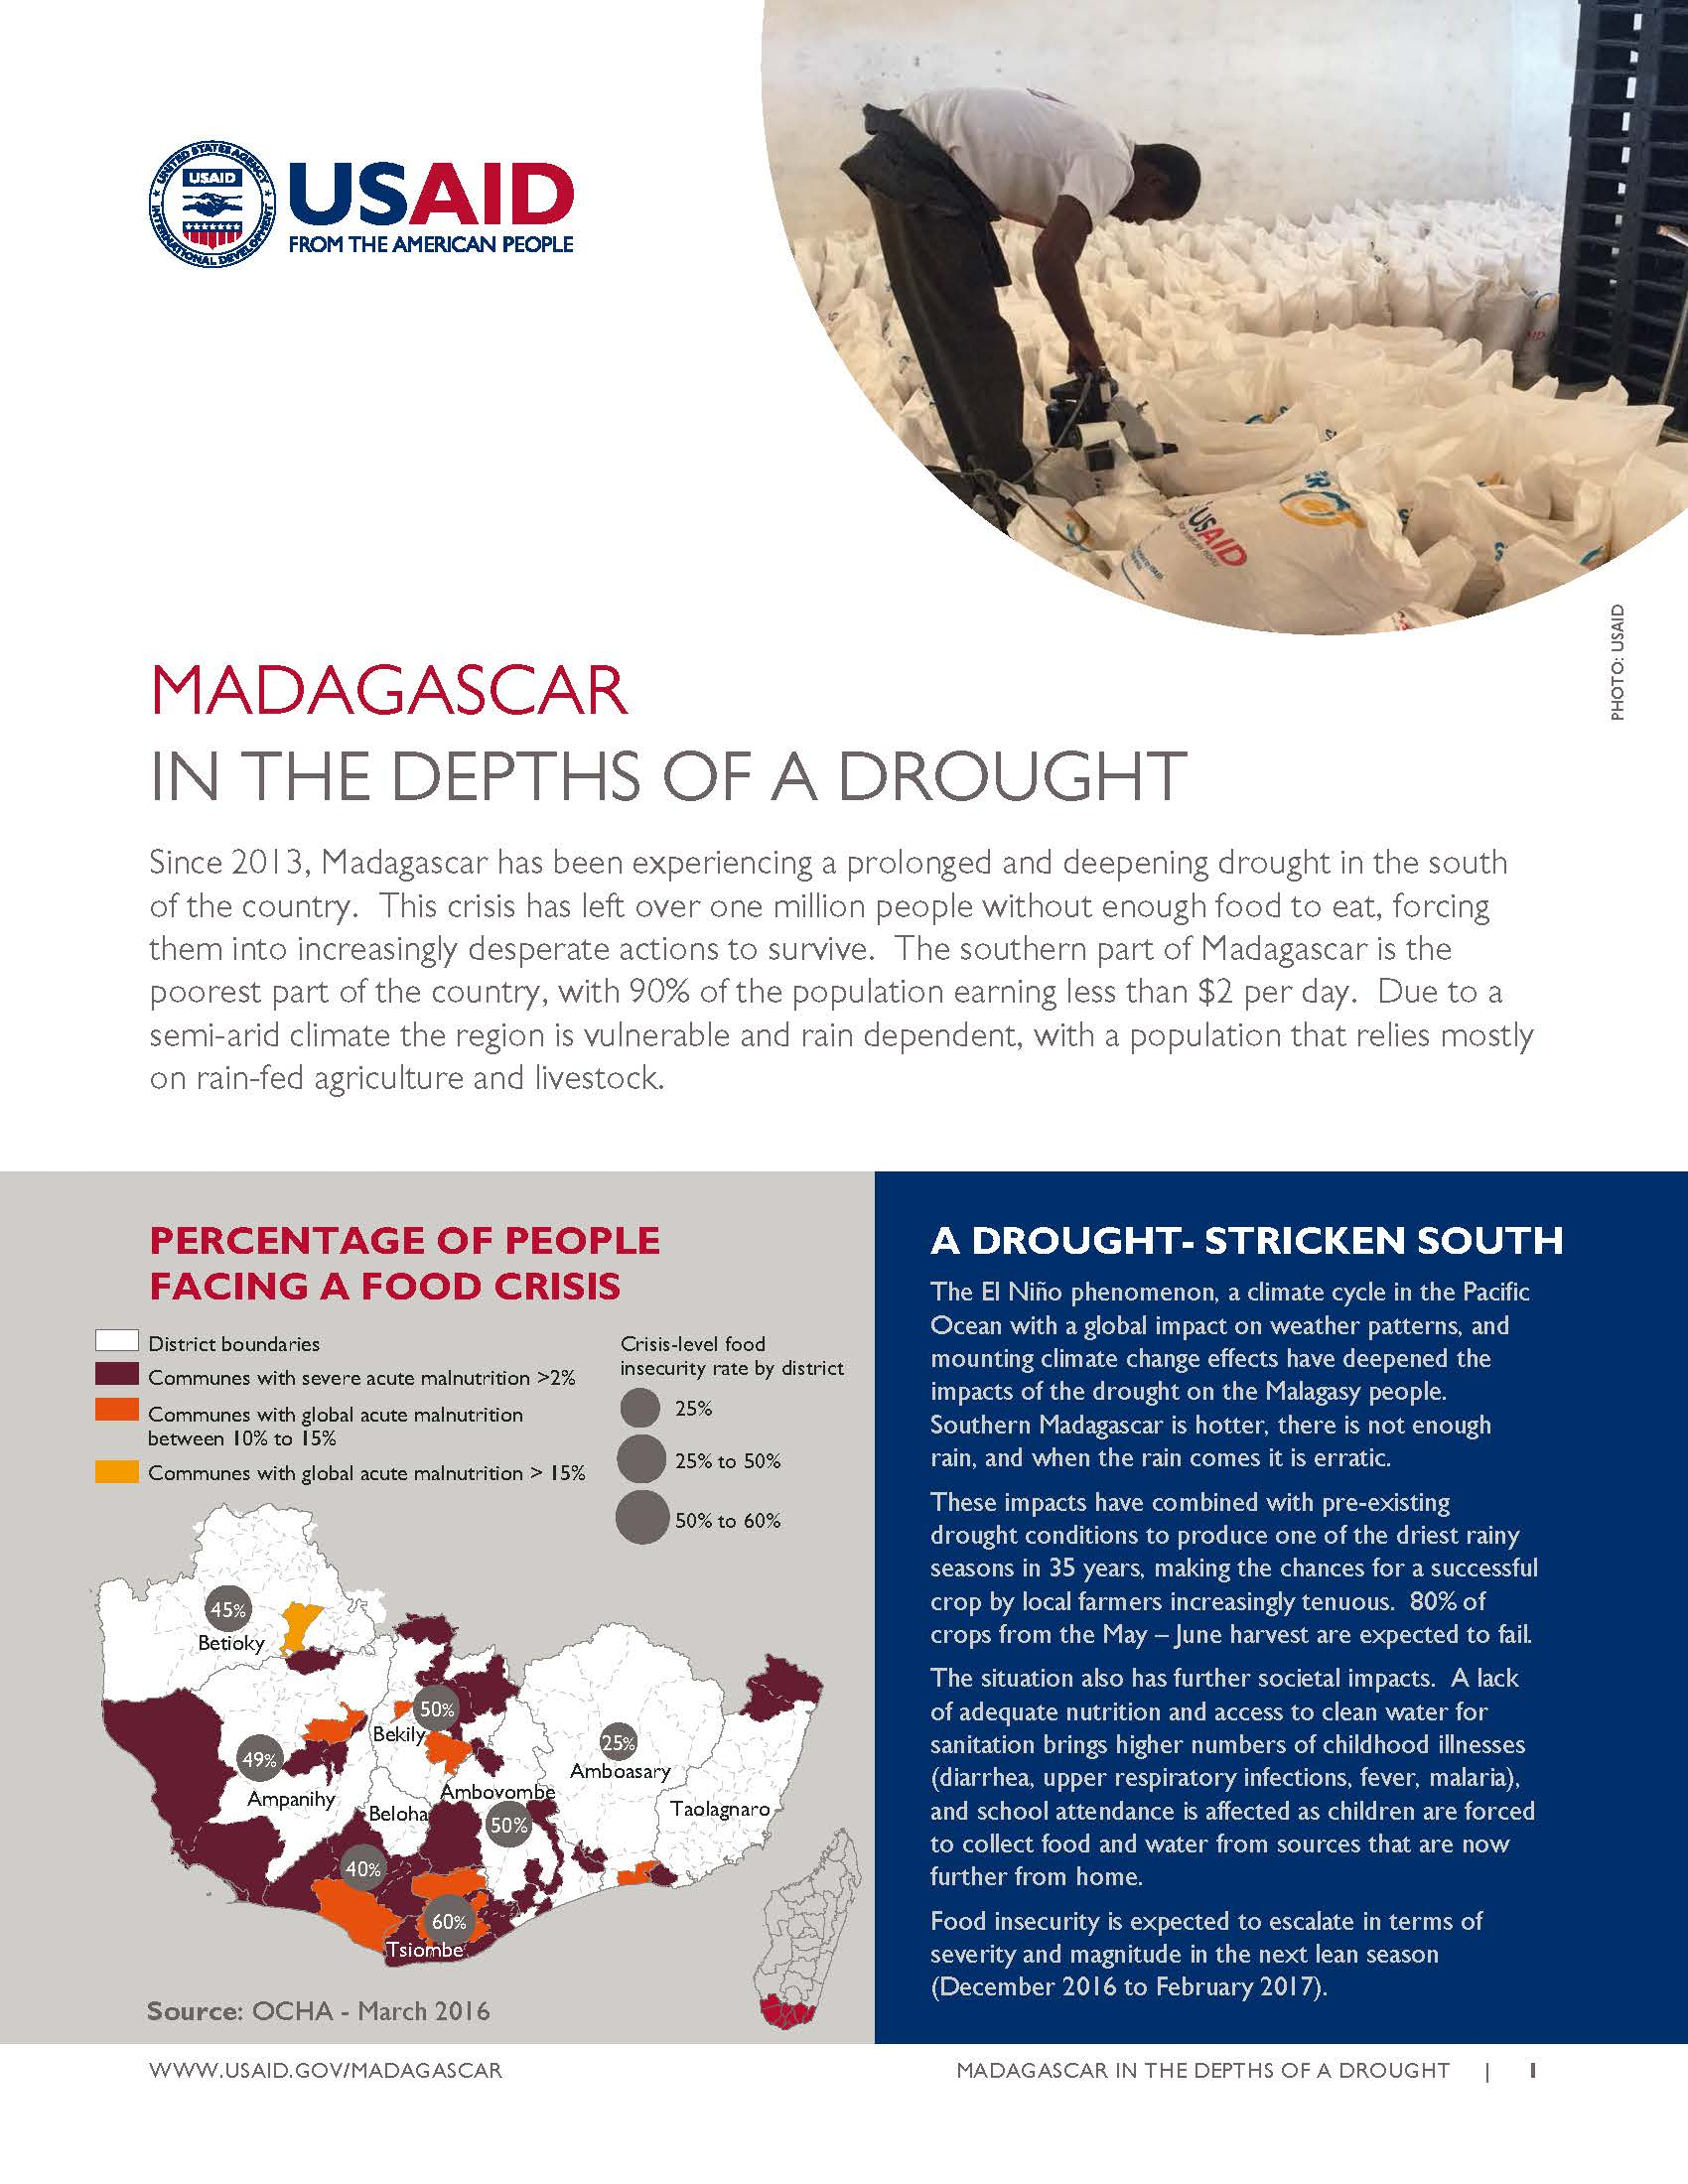 Madagascar: In the Depths of a Drought